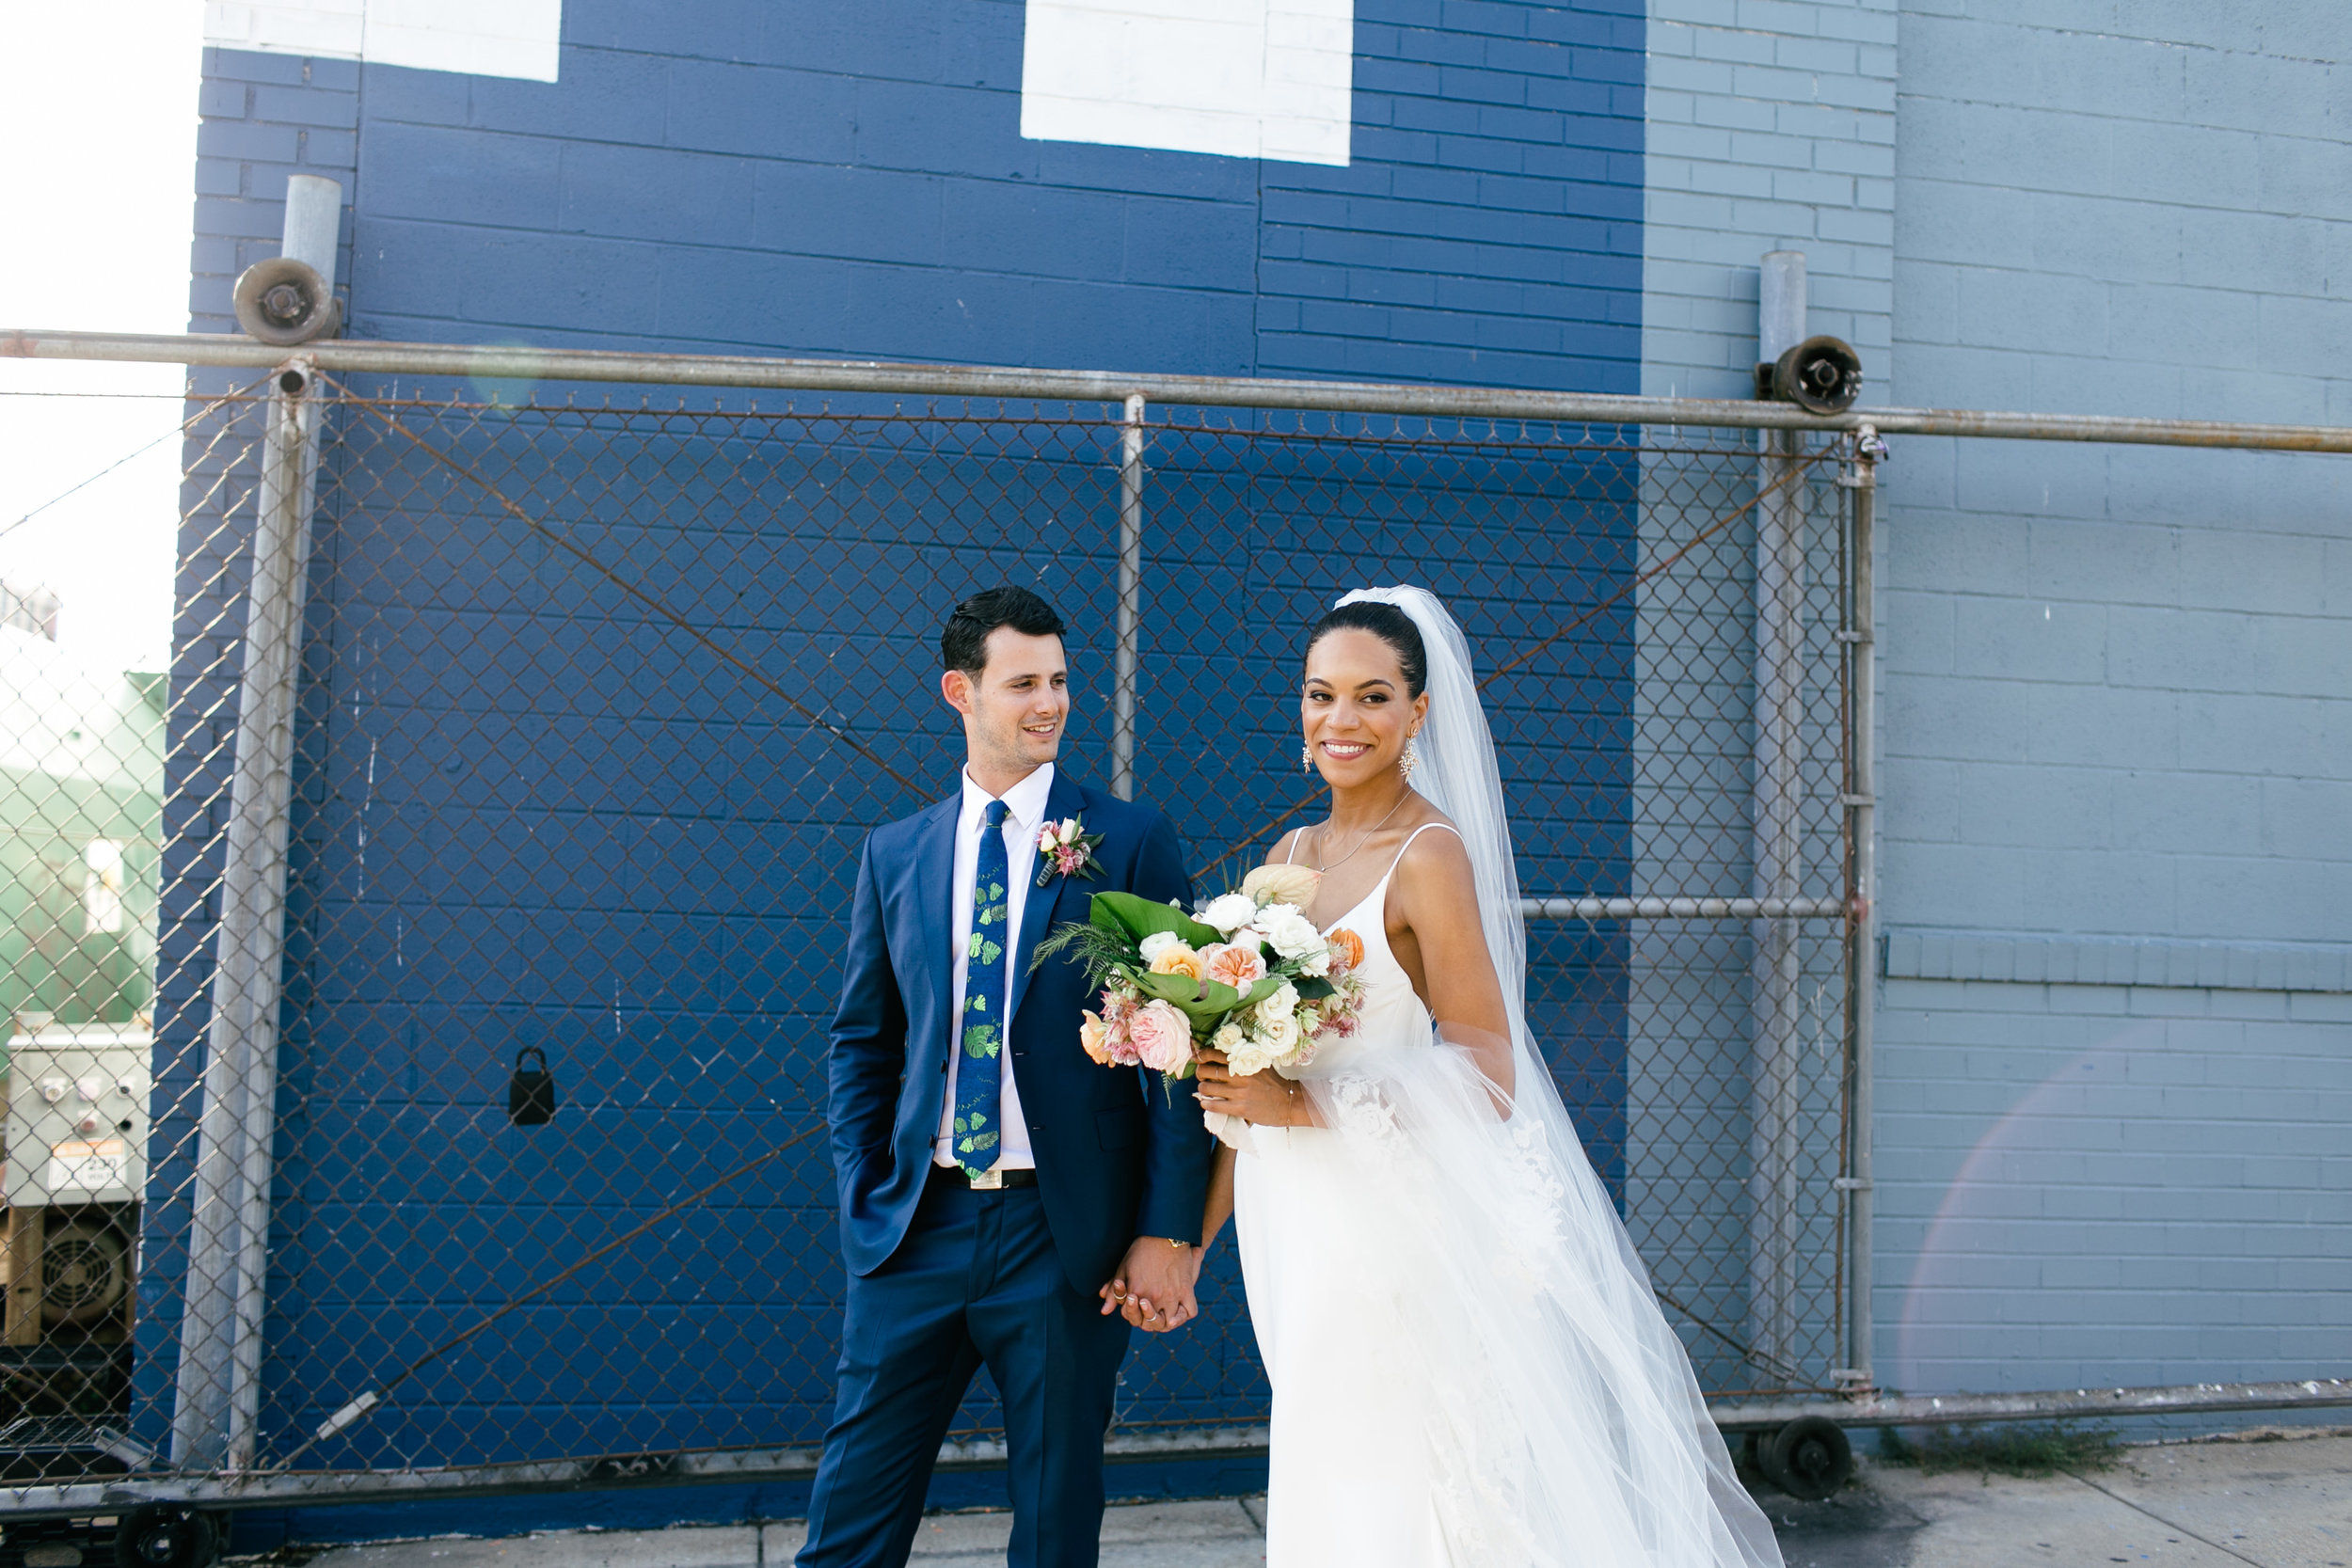 photography-wedding-weddings-natural-candid-dock 5 dc-washington dc-philadelphia-mixed race-editorial-modern-fine-art-006.JPG